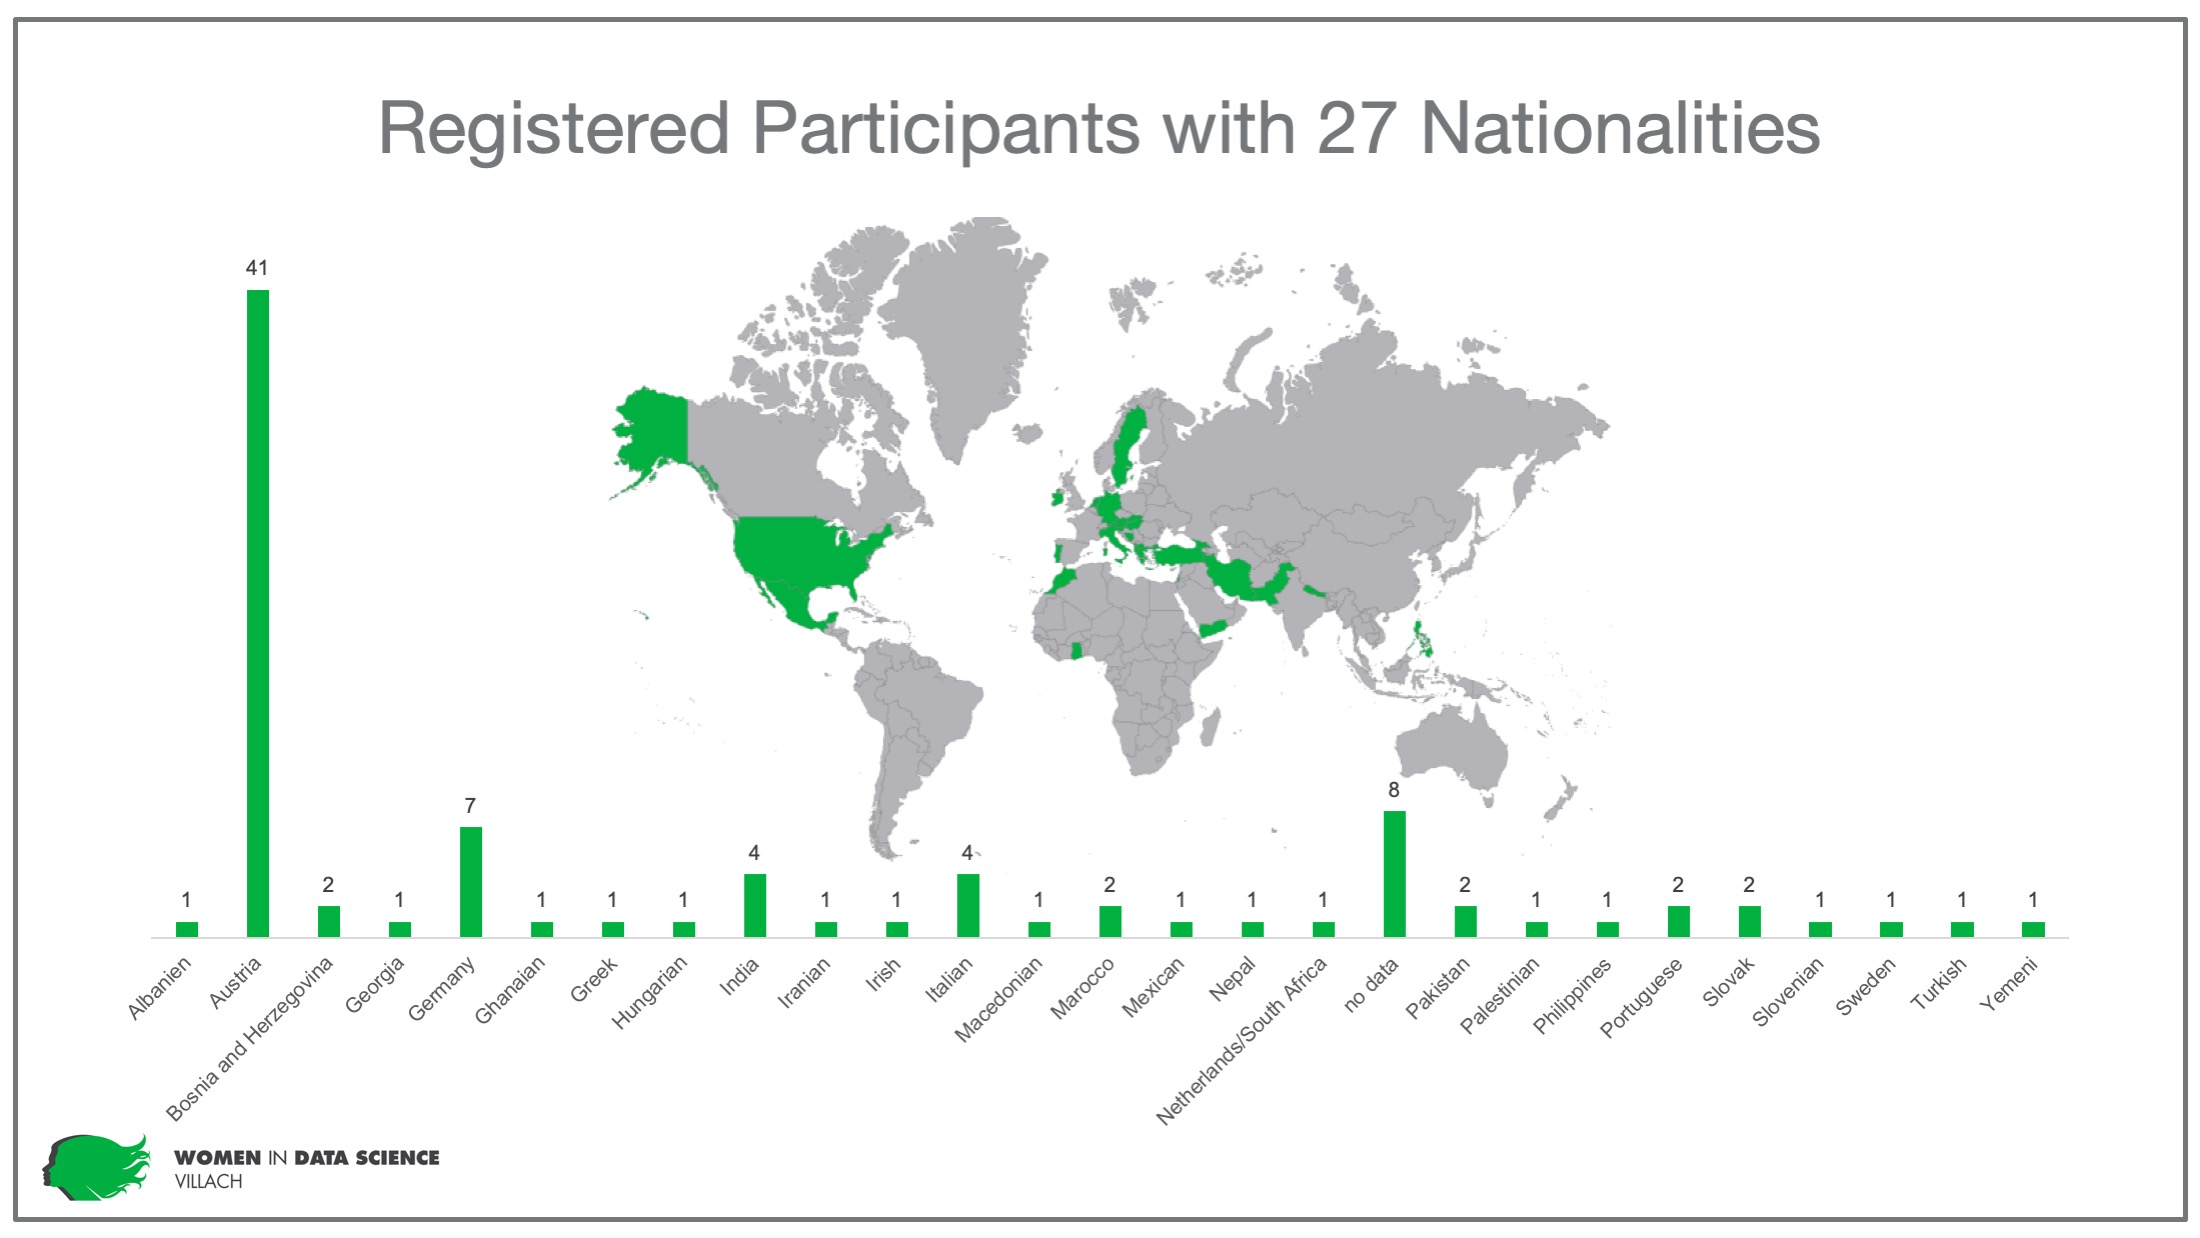 Women in Data Science Villach - nationalities of participants